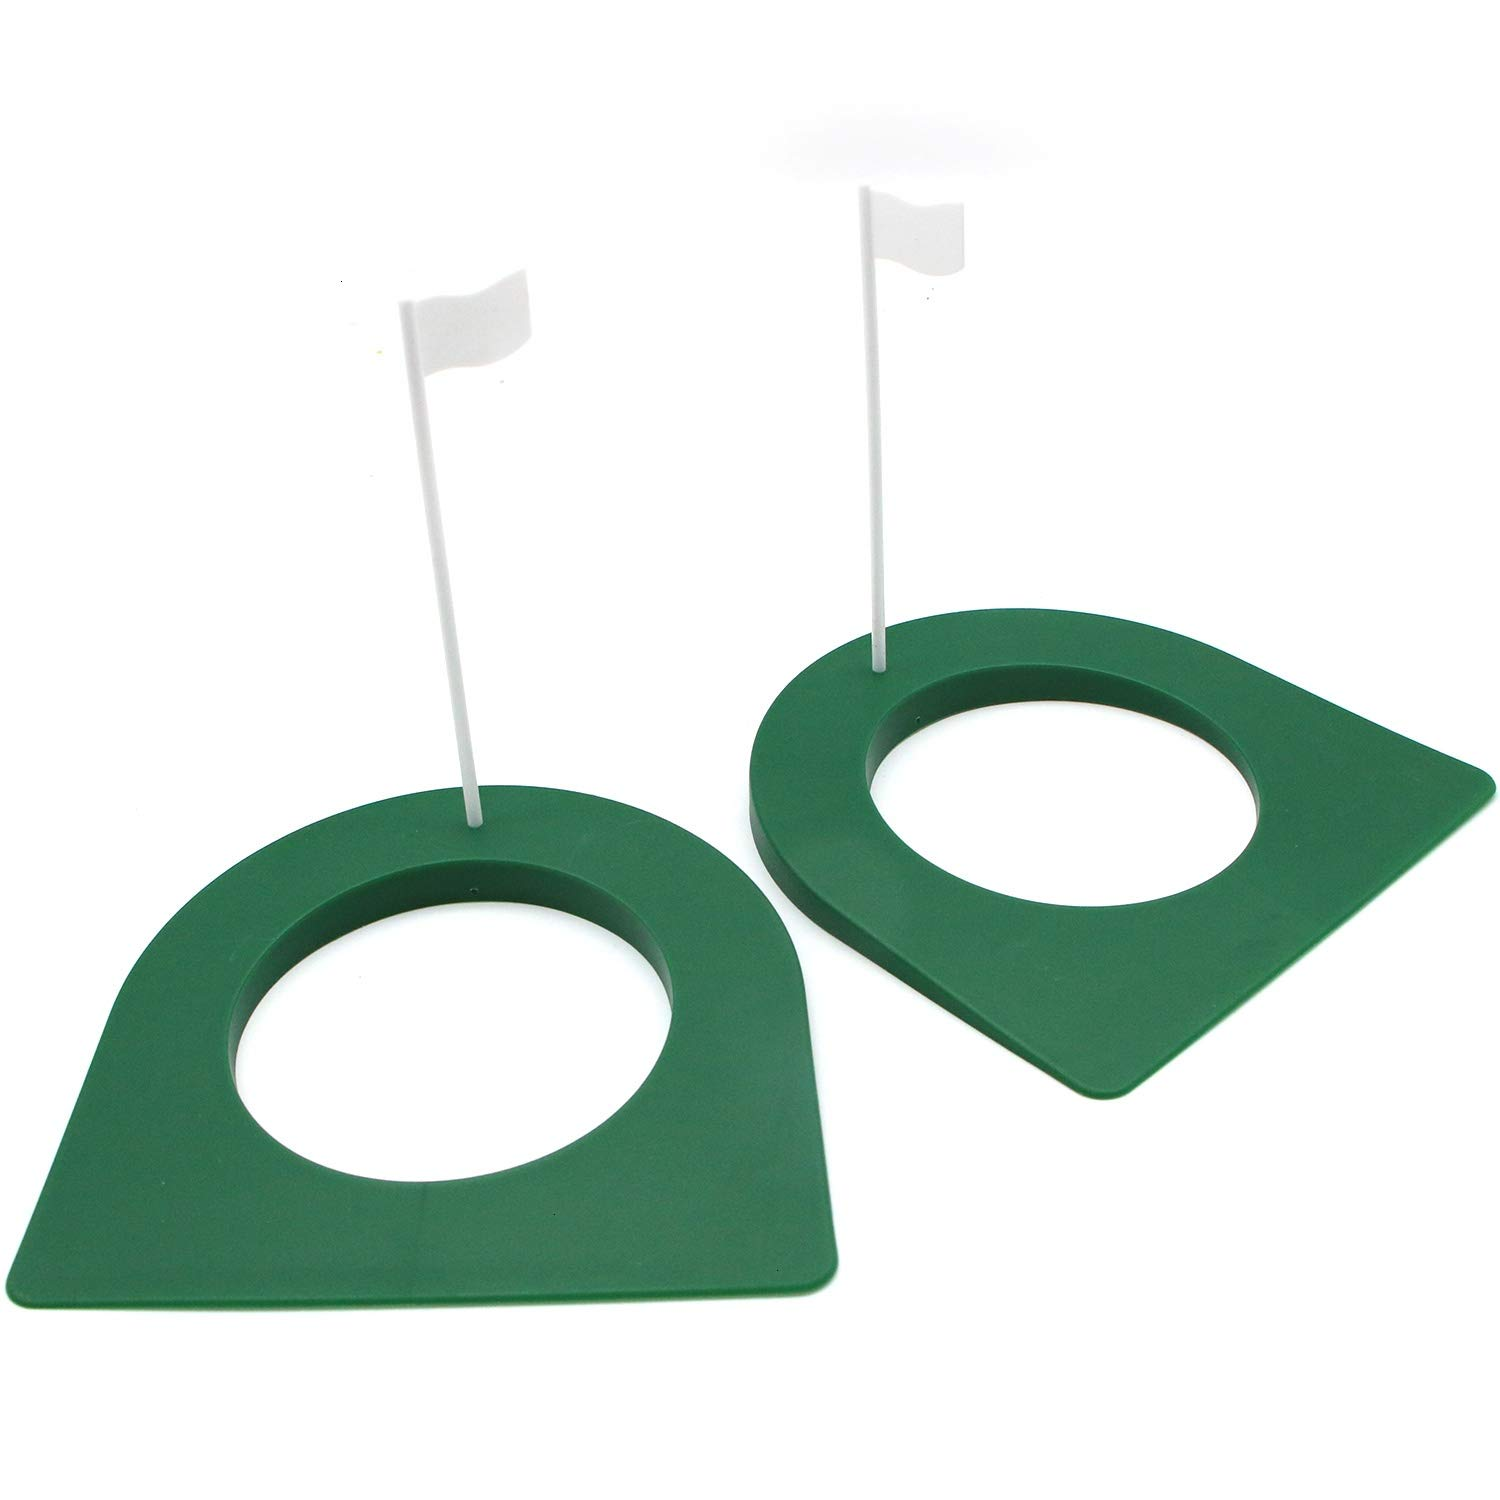 JETEHO 2 Pack Golf Practice Putting Cup Indoor Outdoor Gold Putter Training Aids Regulation Cup by JETEHO